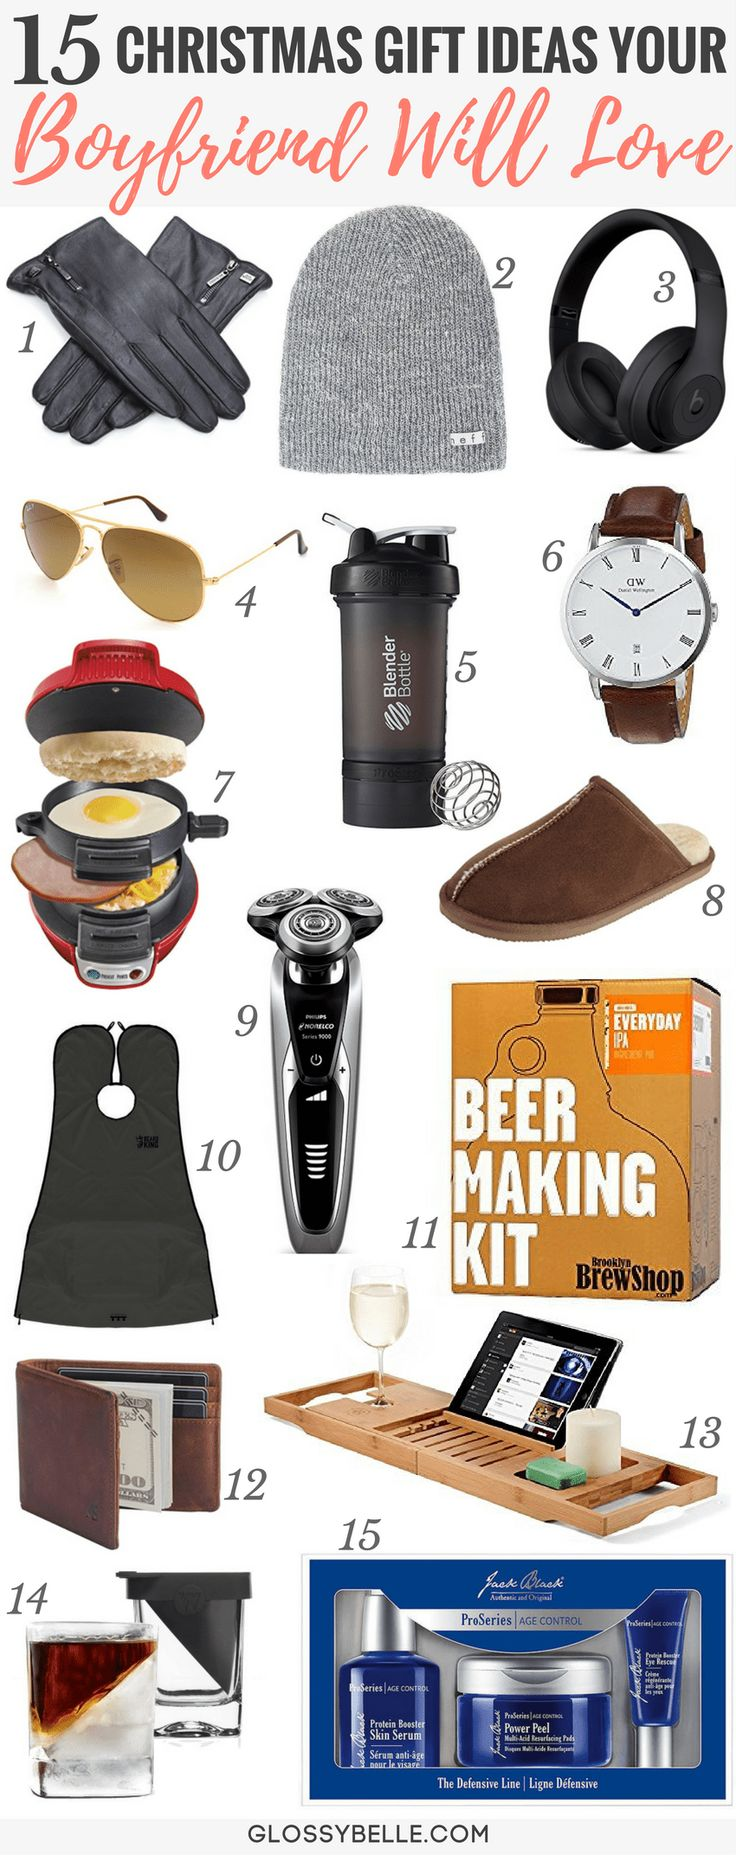 Latest Deals Boyfriend Christmas Gift Guide • twobrits